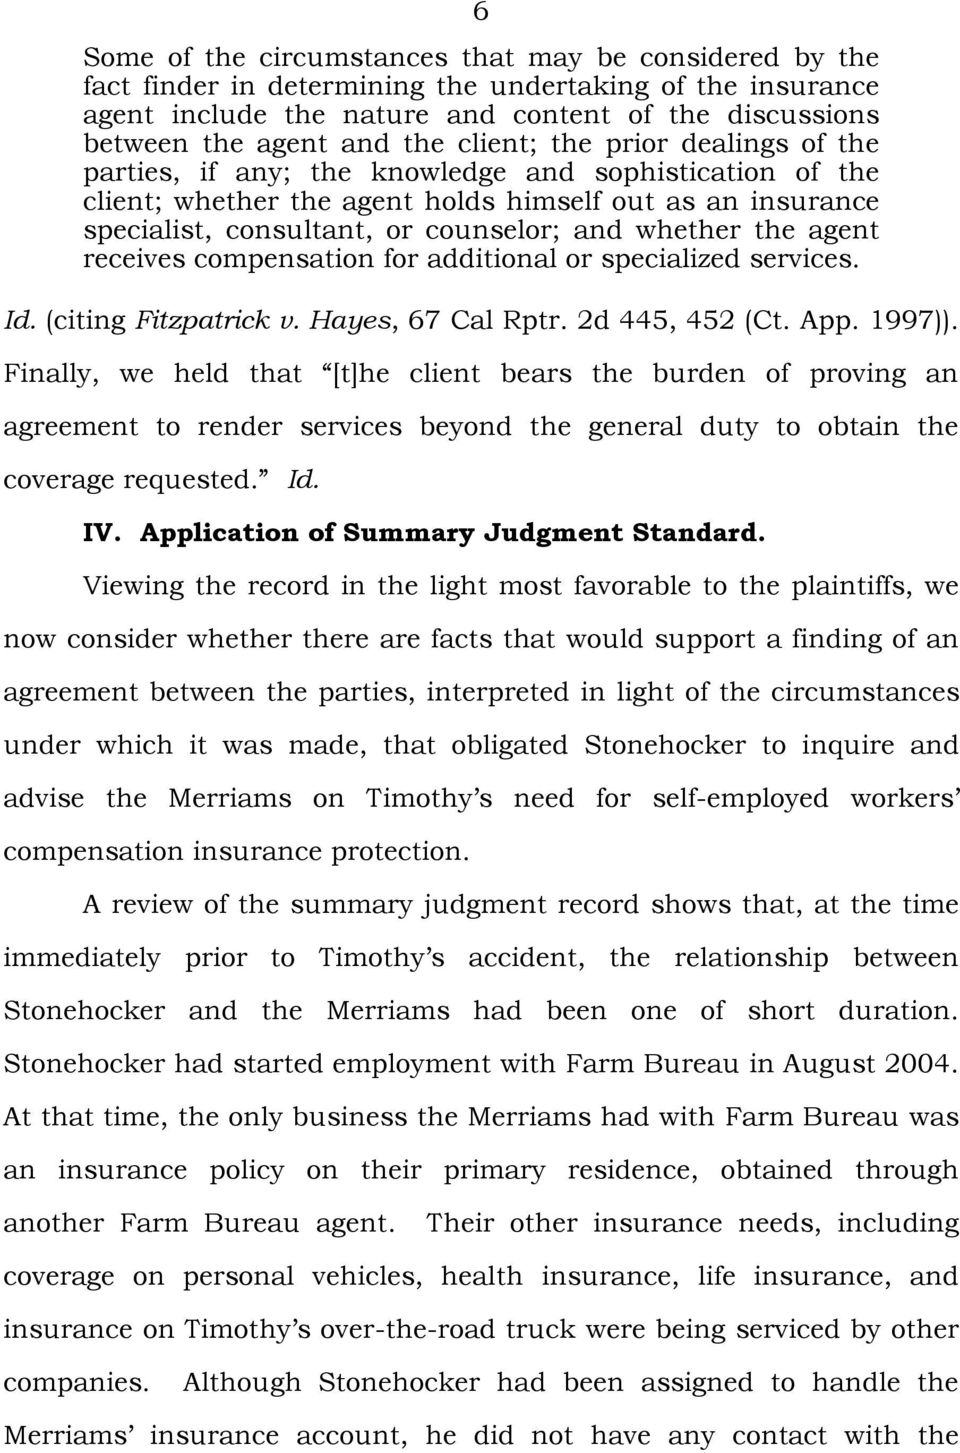 whether the agent receives compensation for additional or specialized services. Id. (citing Fitzpatrick v. Hayes, 67 Cal Rptr. 2d 445, 452 (Ct. App. 1997)).